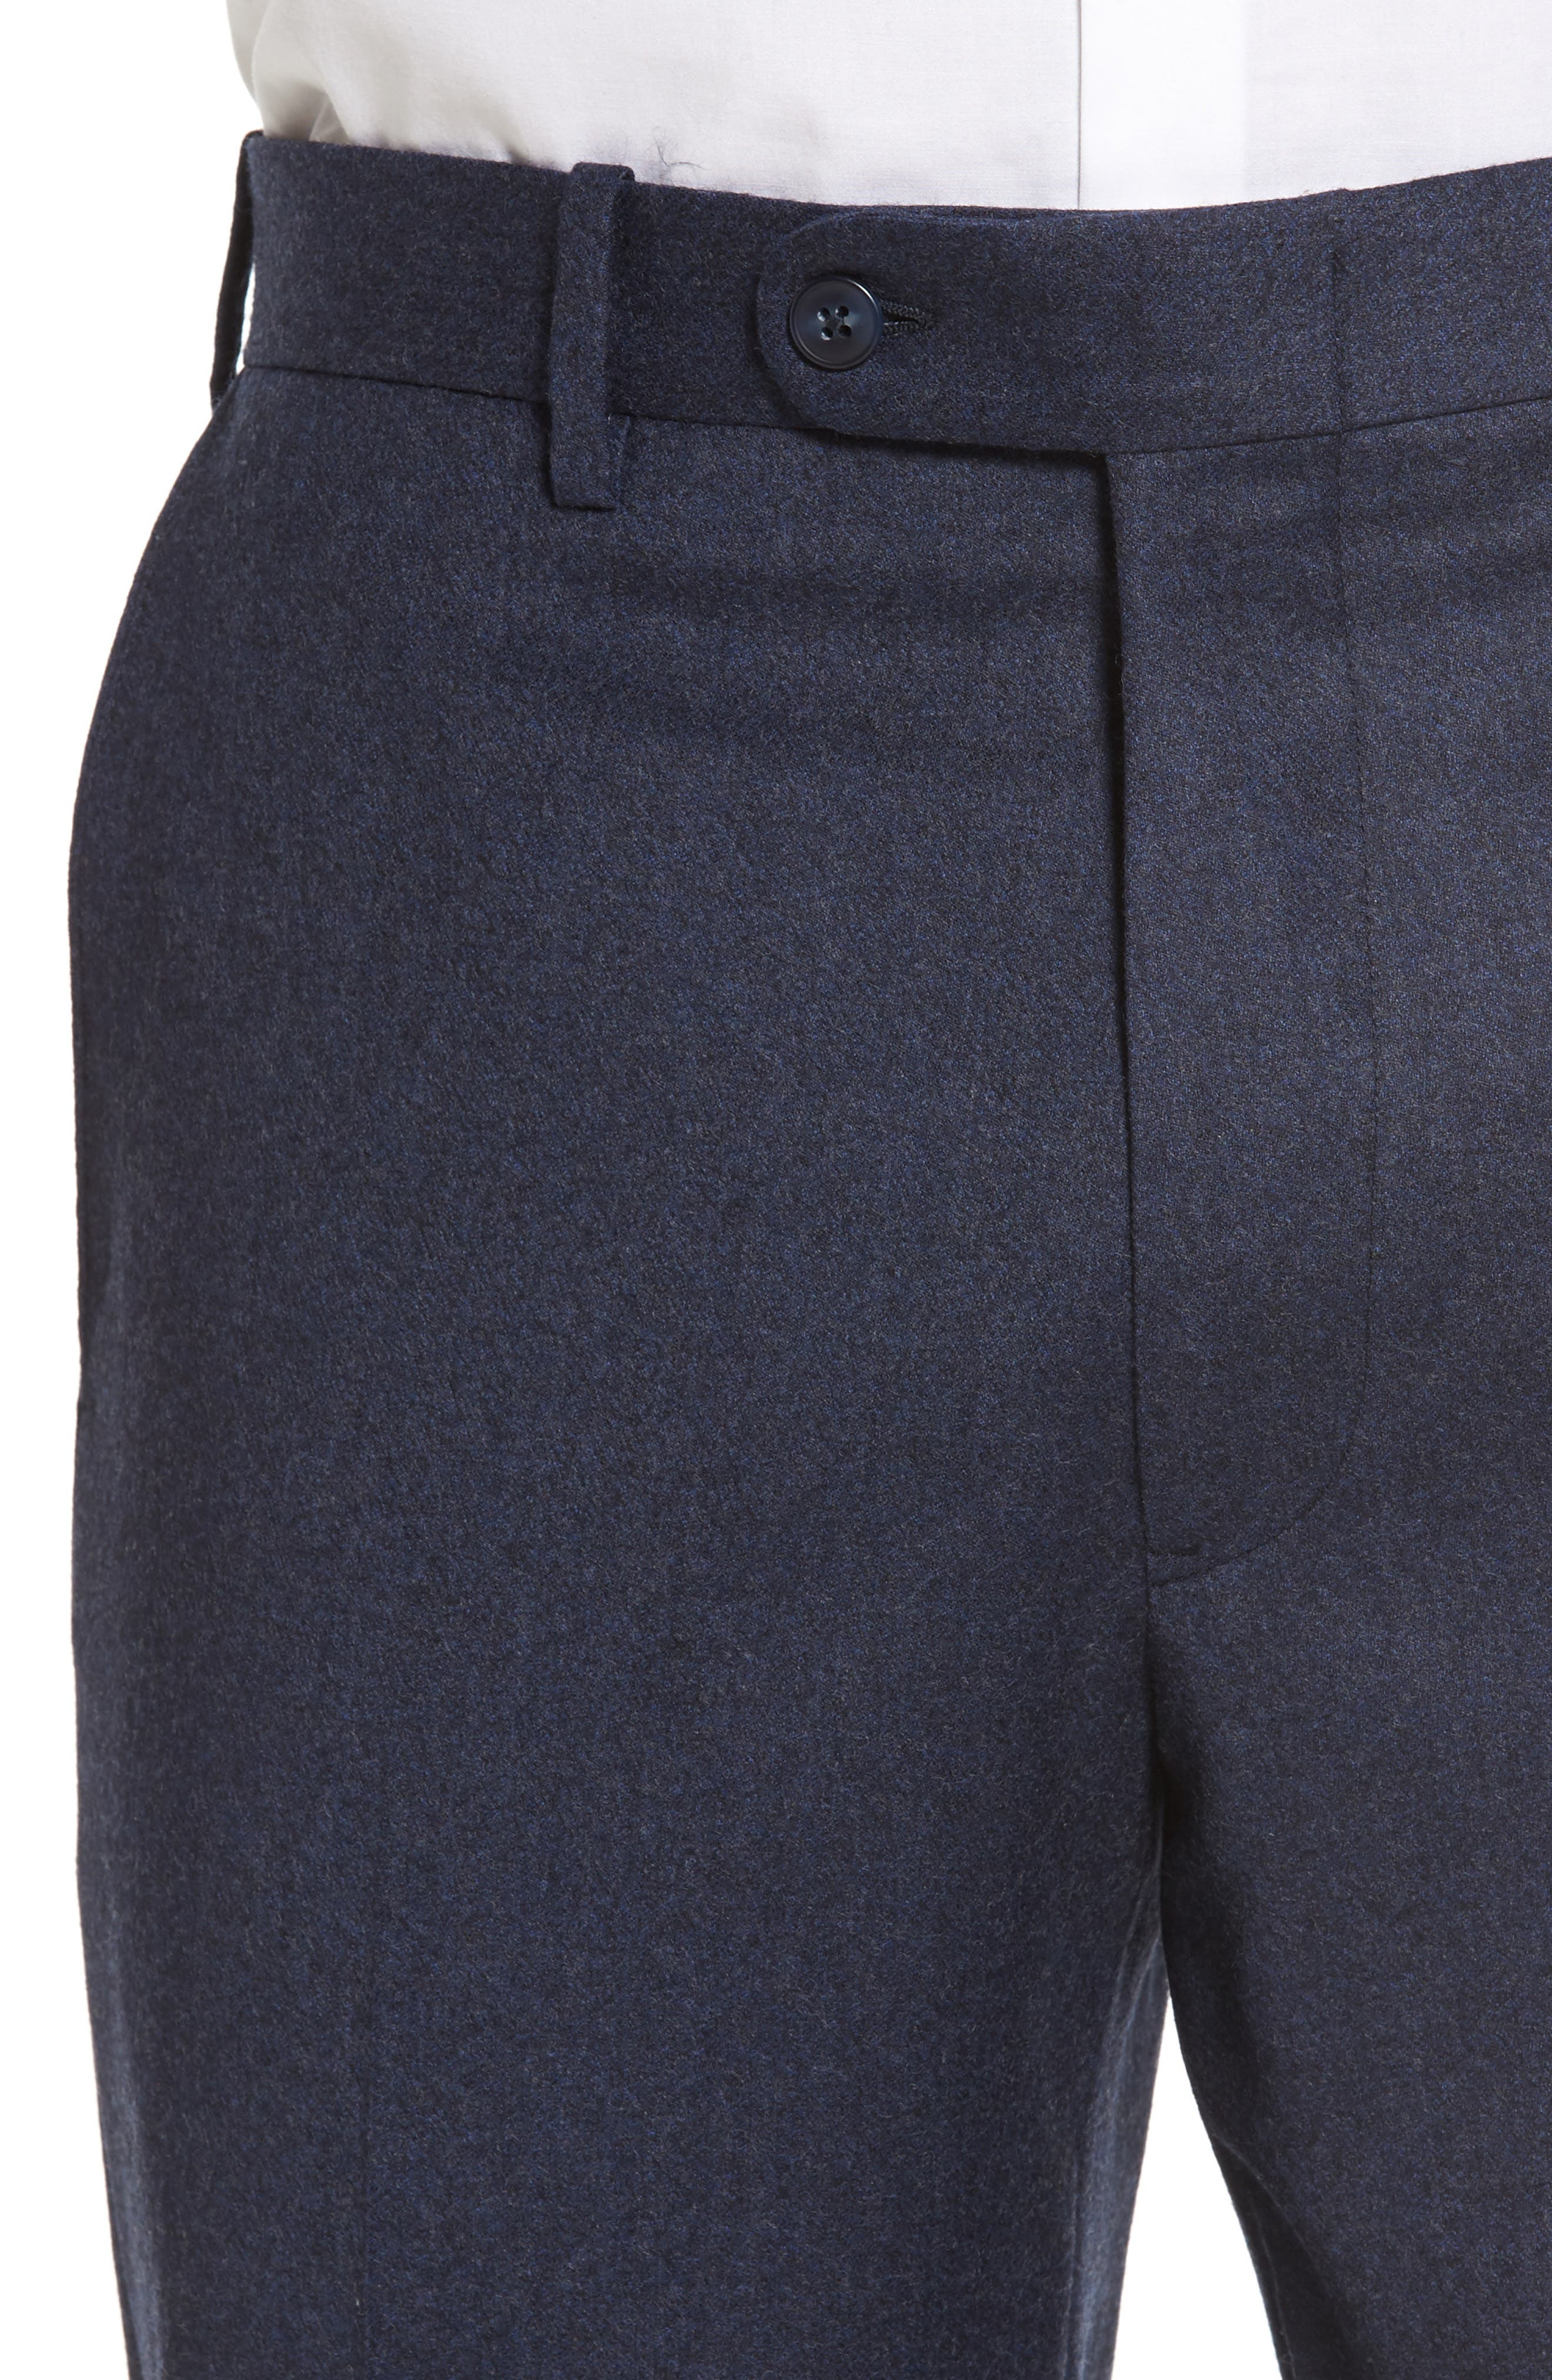 Alternate Image 4  - JB Britches Flat Front Solid Wool & Cashmere Trousers